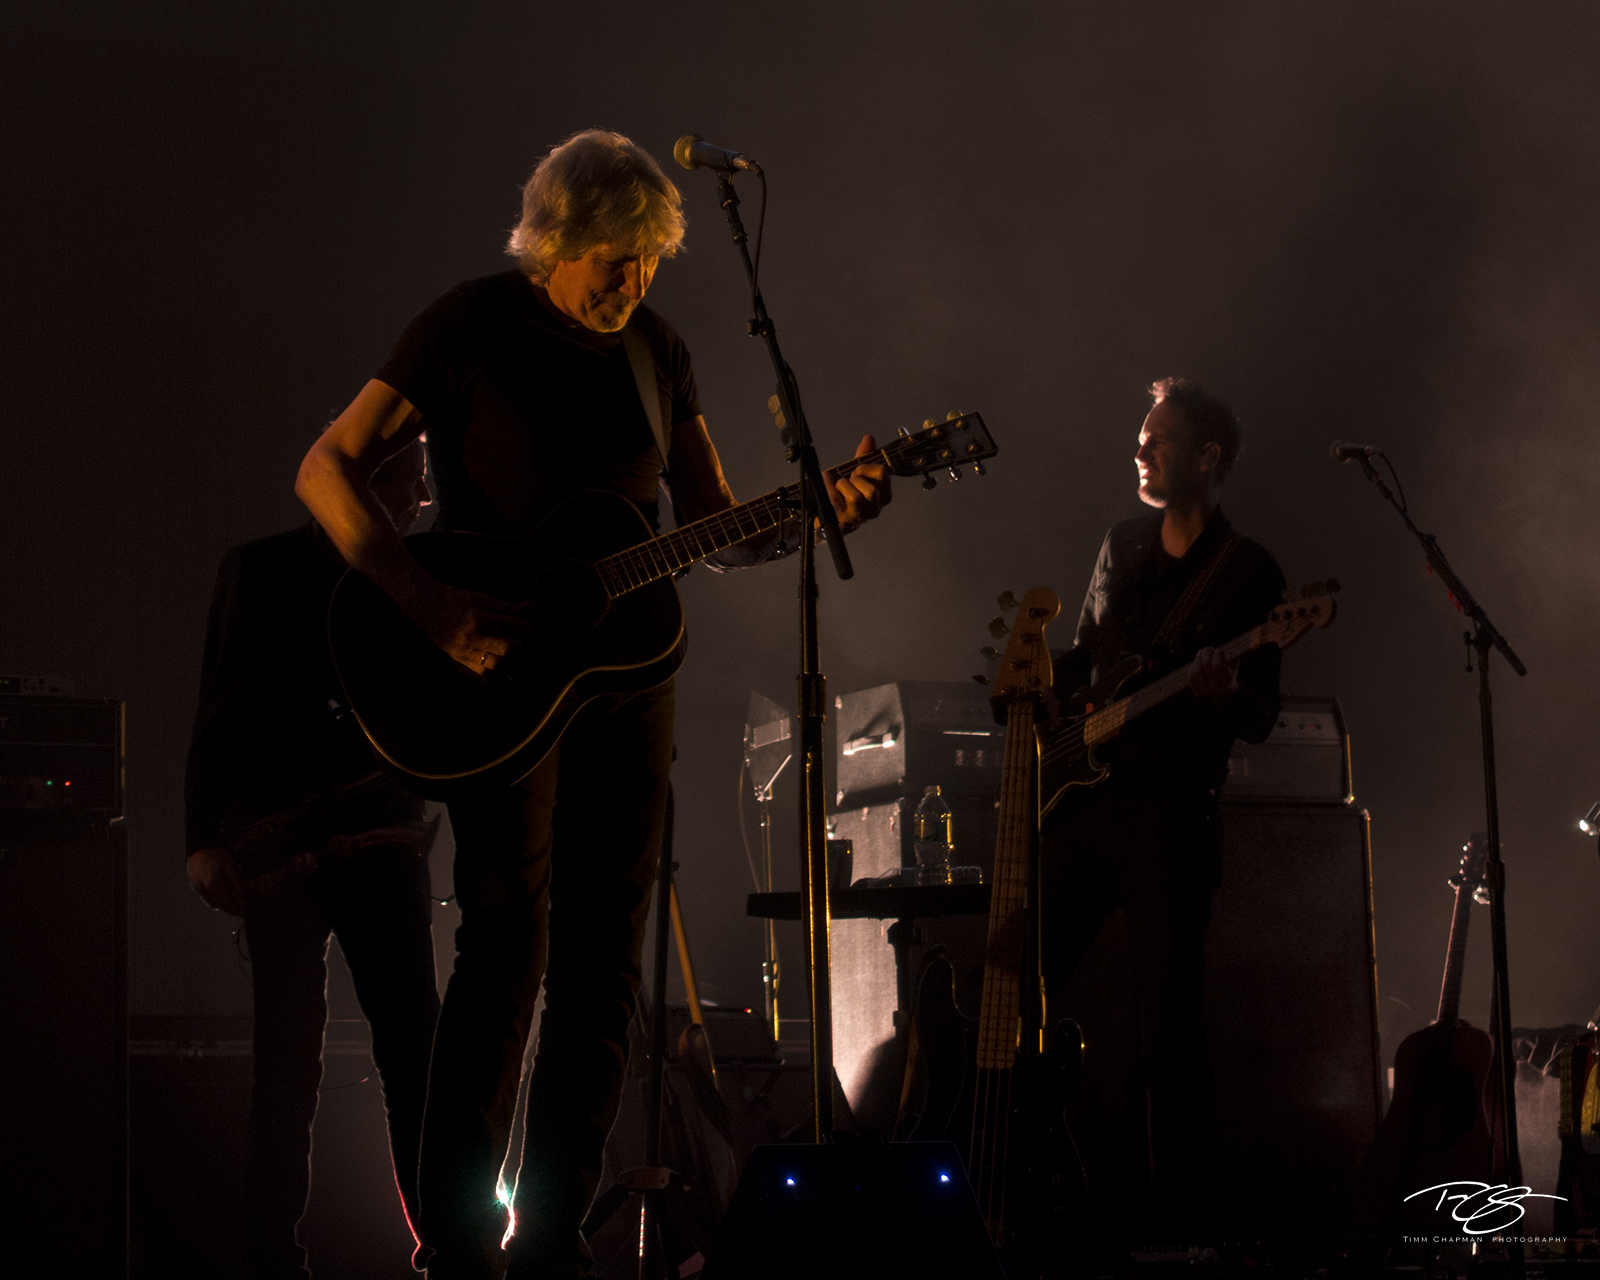 roger waters, pink floyd, in concert, performing, us + them, us and them, acoustic guitar, dark side of the moon, the wall, photo